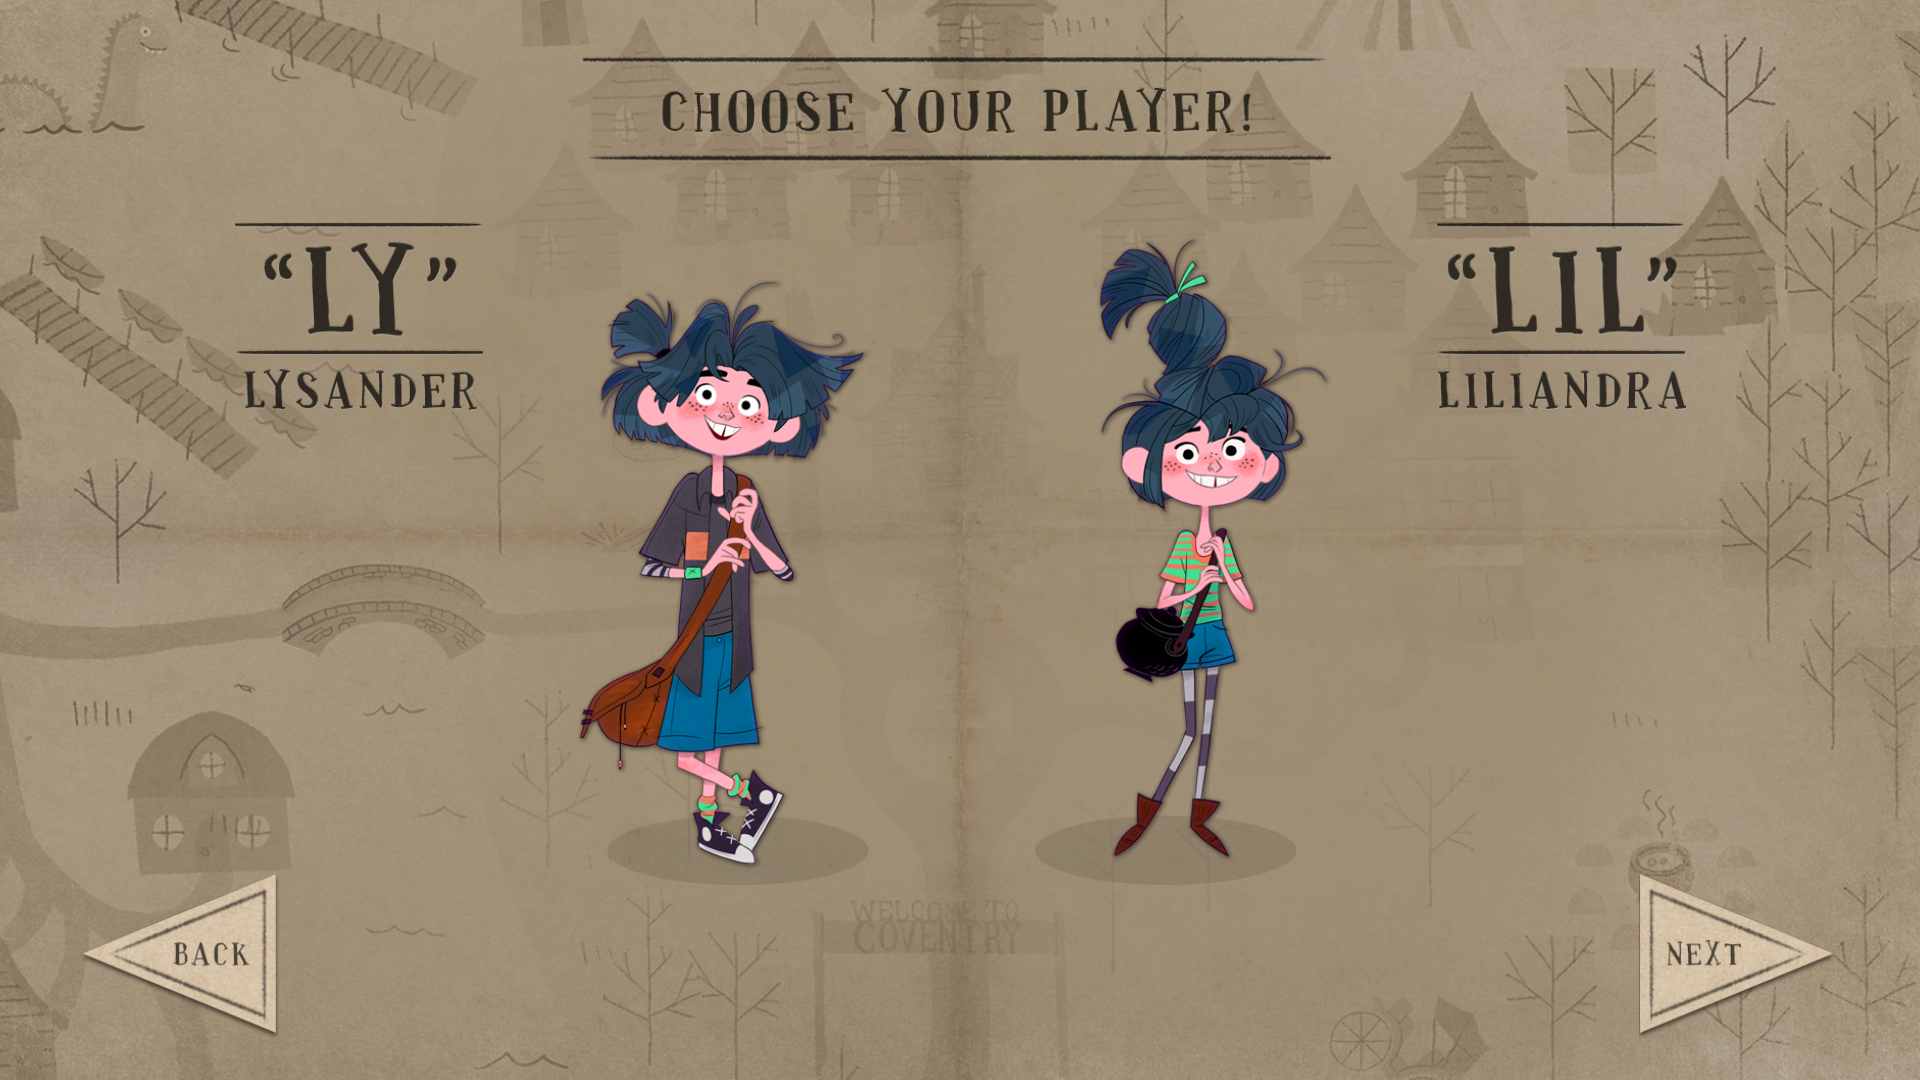 player_choice.png